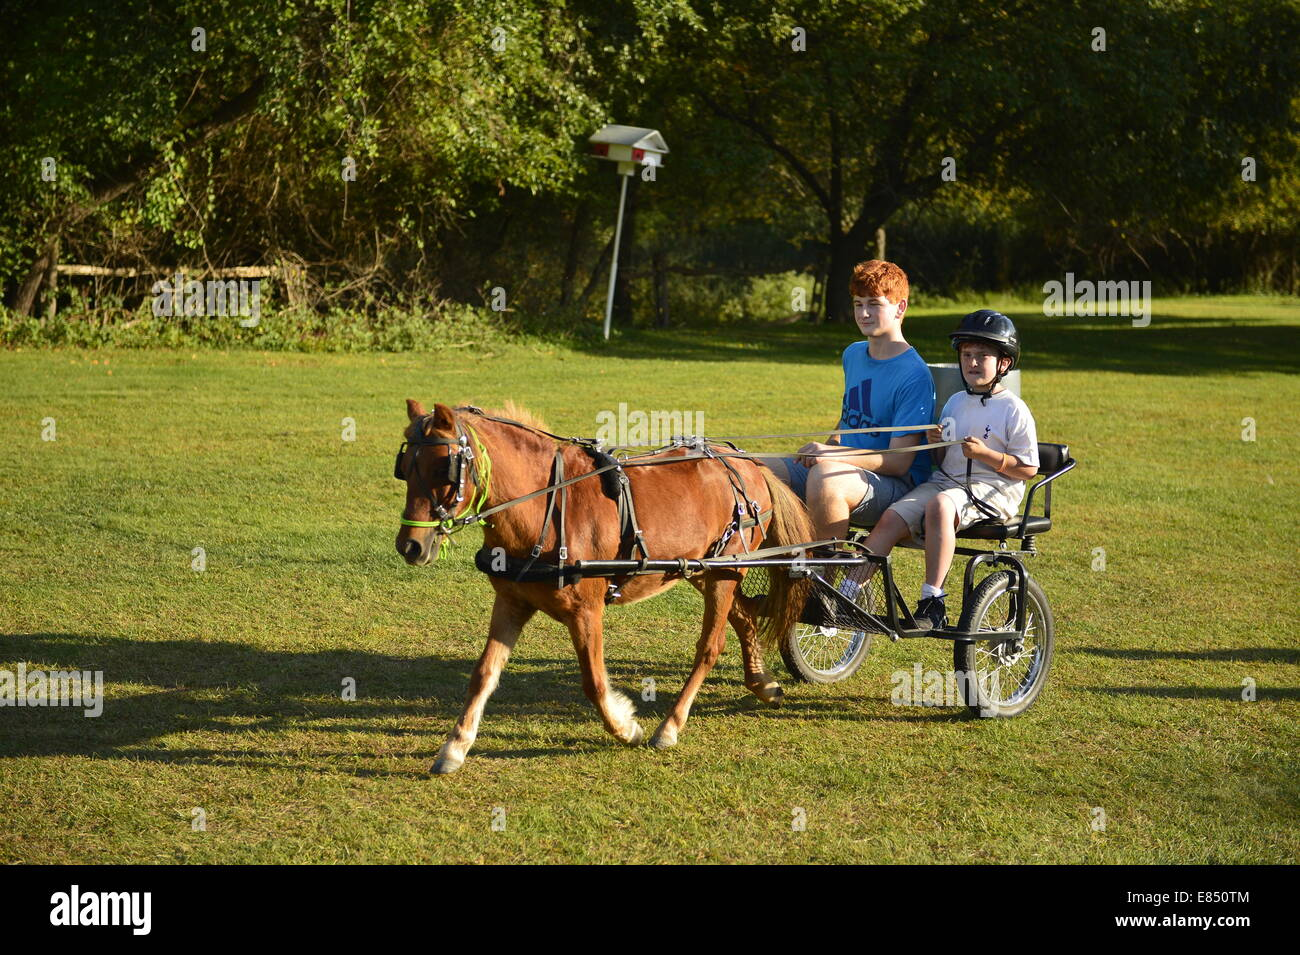 Old Bethpage, New York, USA. 28th September 2014. Chef the miniature horse is pulling a small cart with two redhead - Stock Image